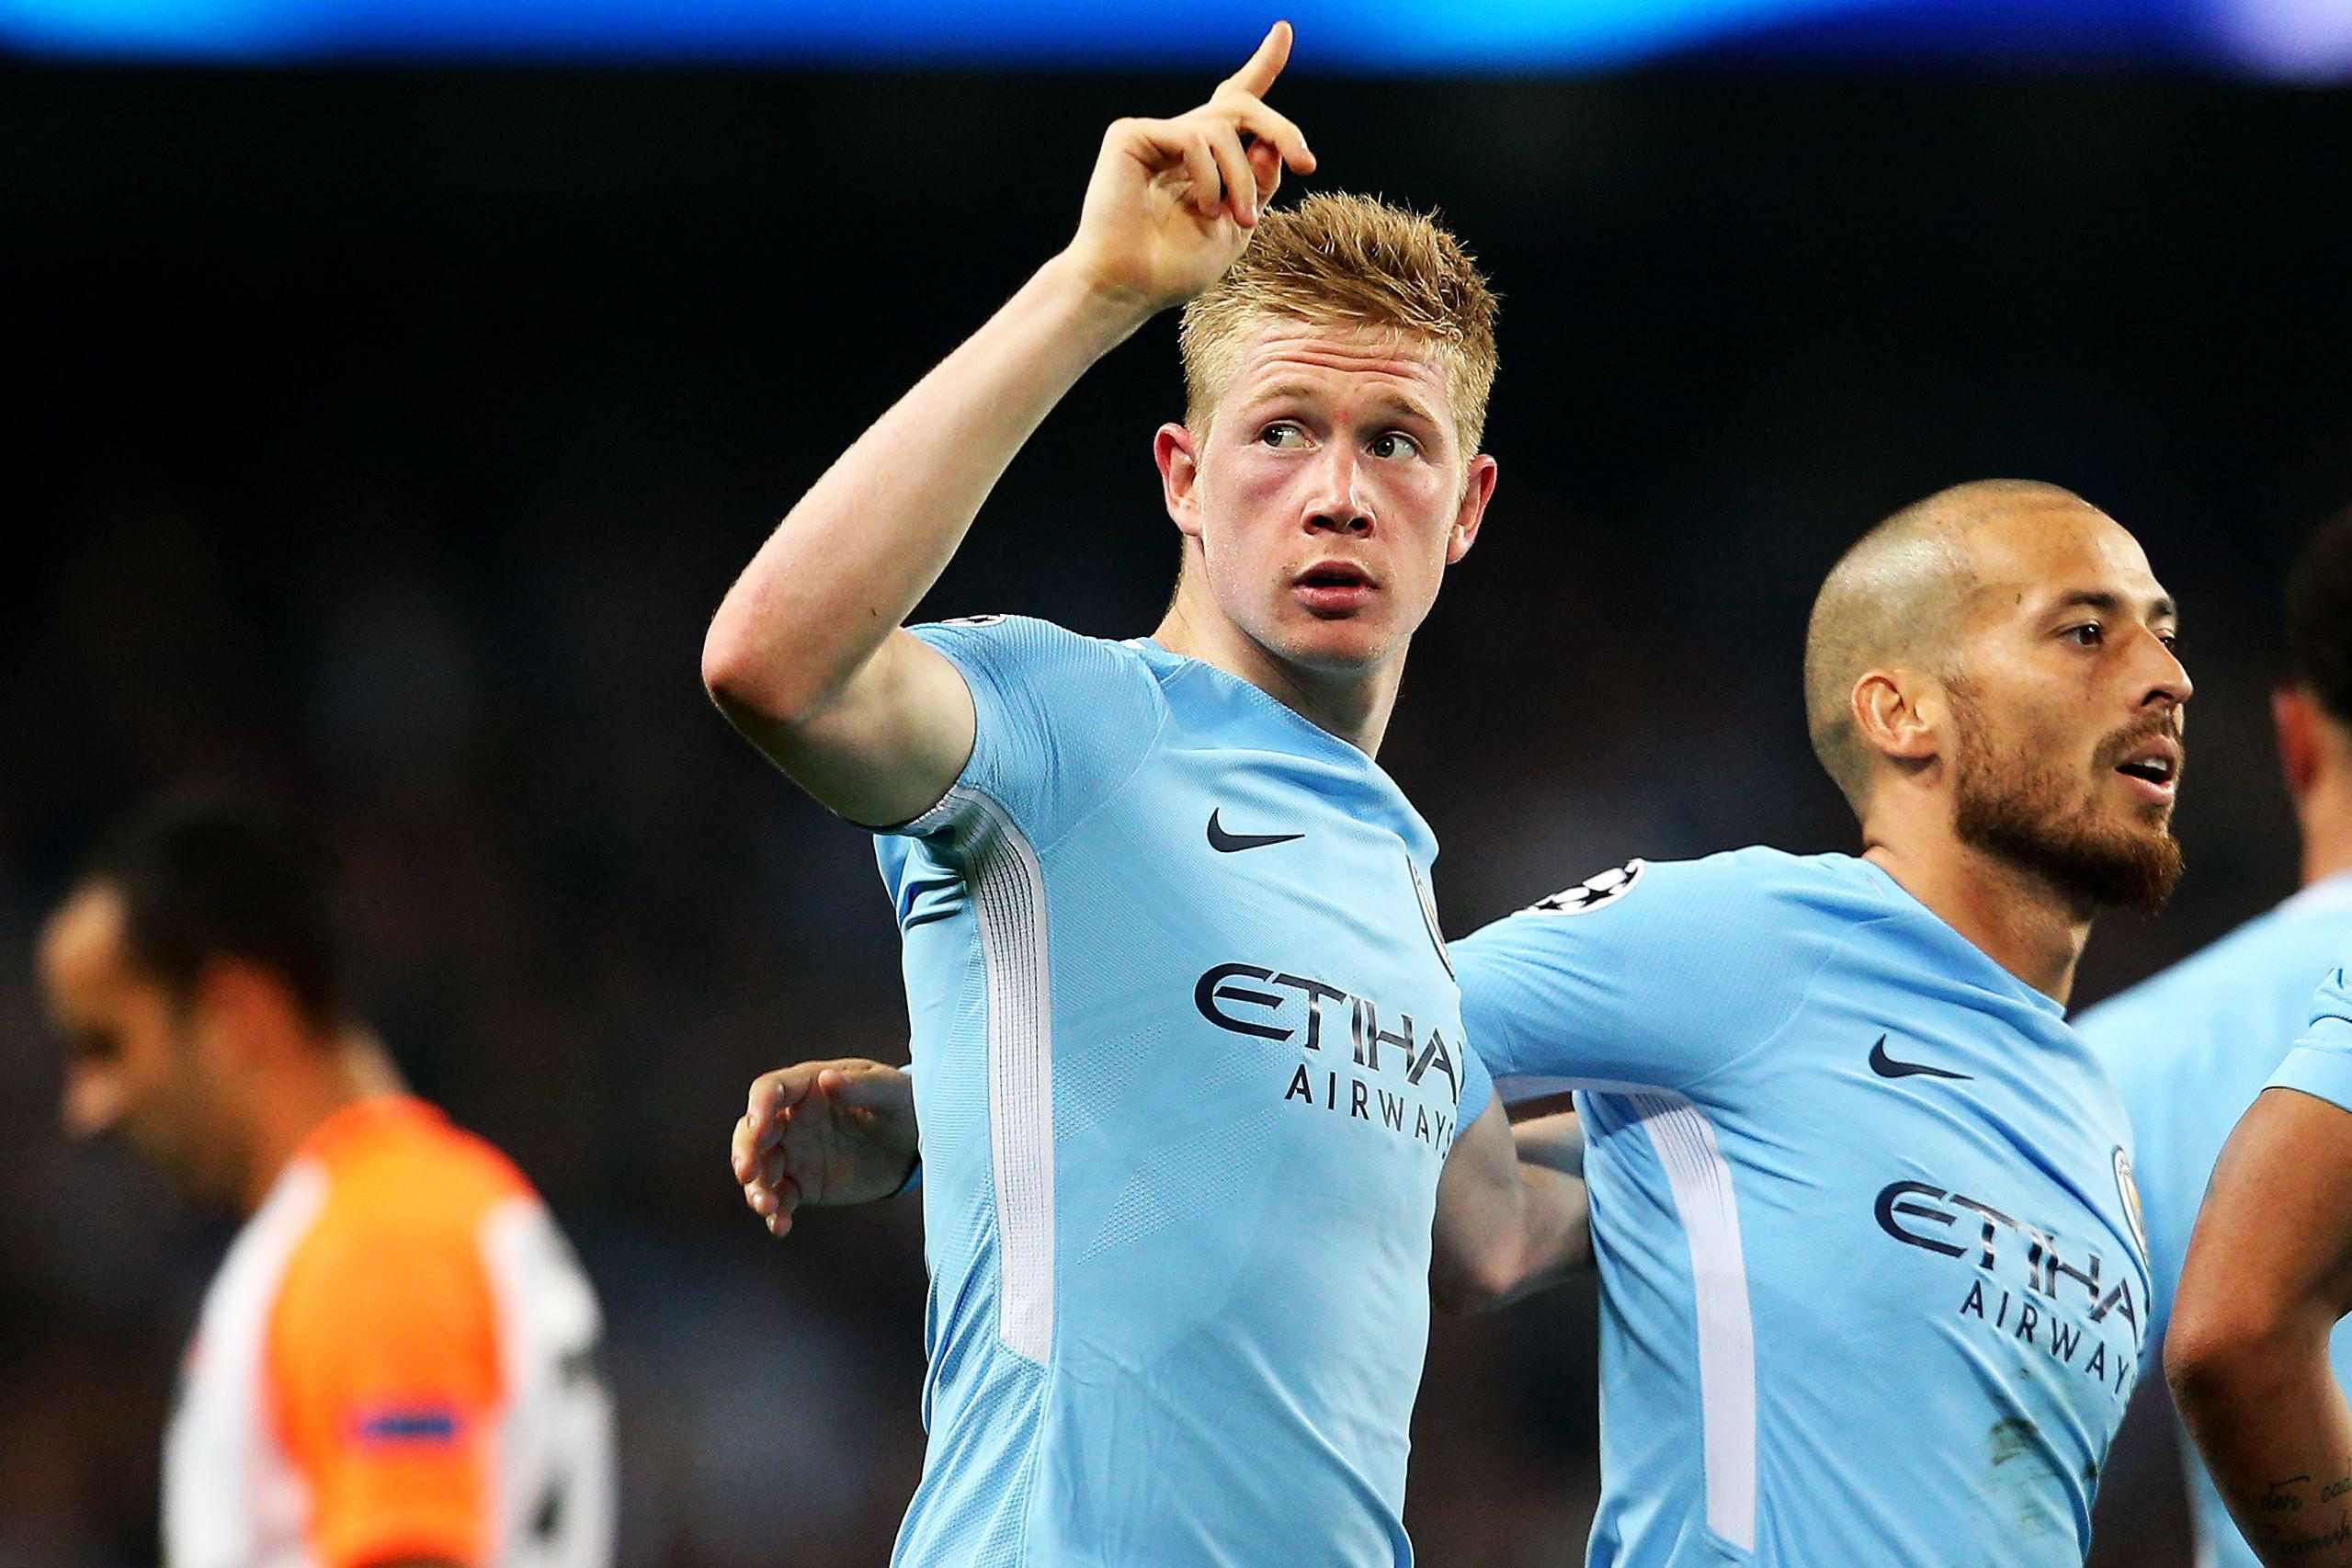 Kevin De Bruyne has been key in making the new tactics work